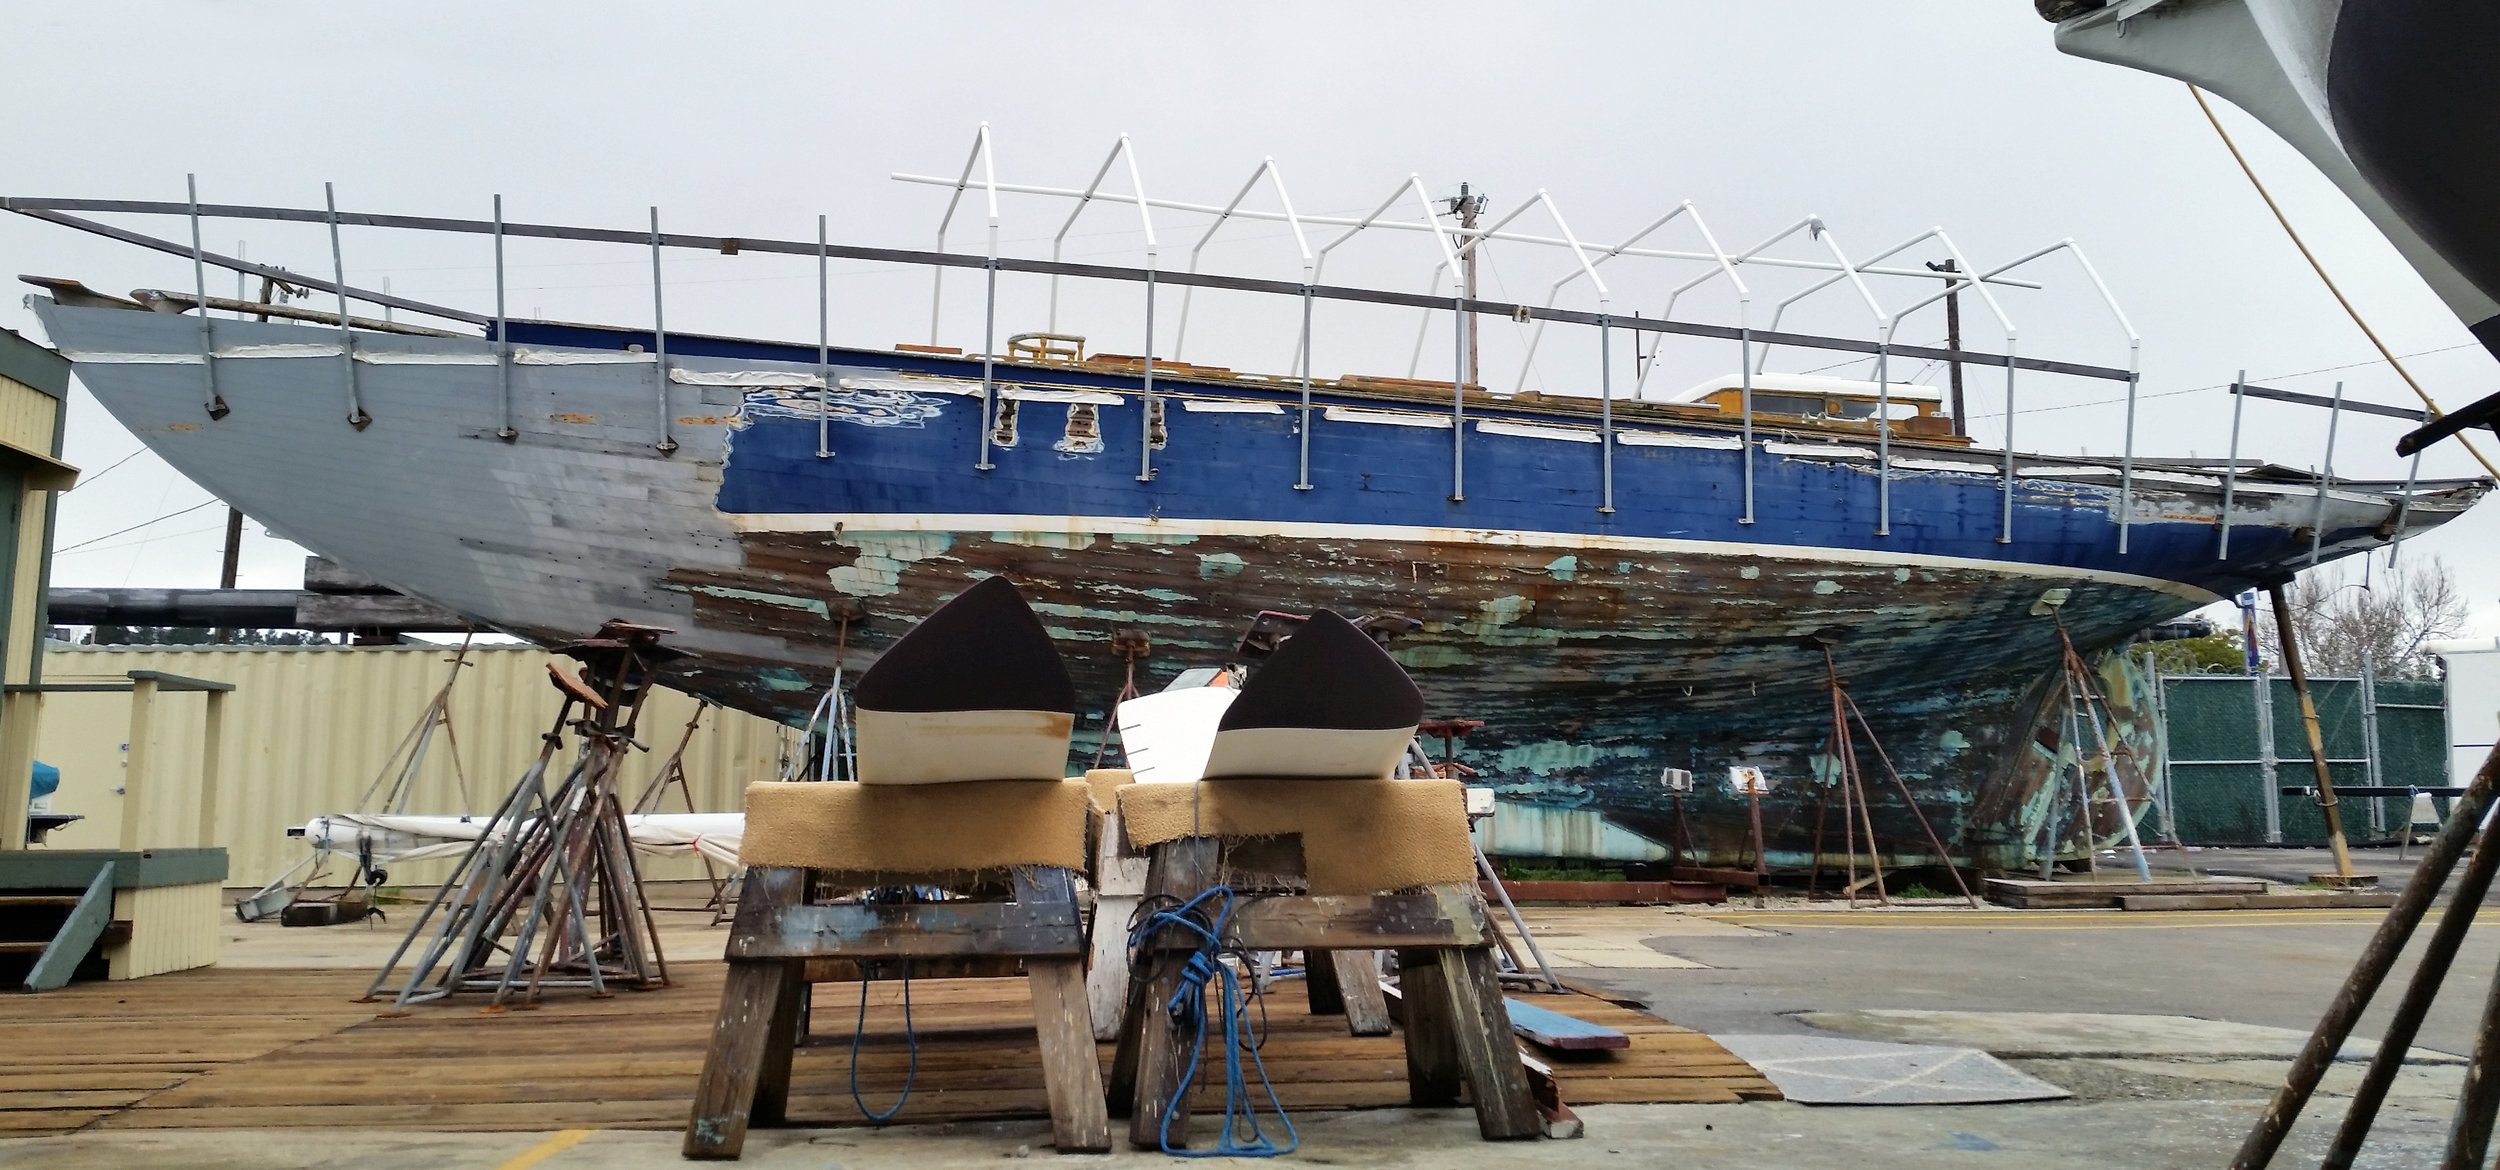 Gorgeous lines on this 73-foot double-headed yawl. She's been residing in KKMI boatyard for more than 16 years; 11 of which under title by the boatyard. Her prior owner was pleased with front of boat repairs, then requested additional restoration commence.